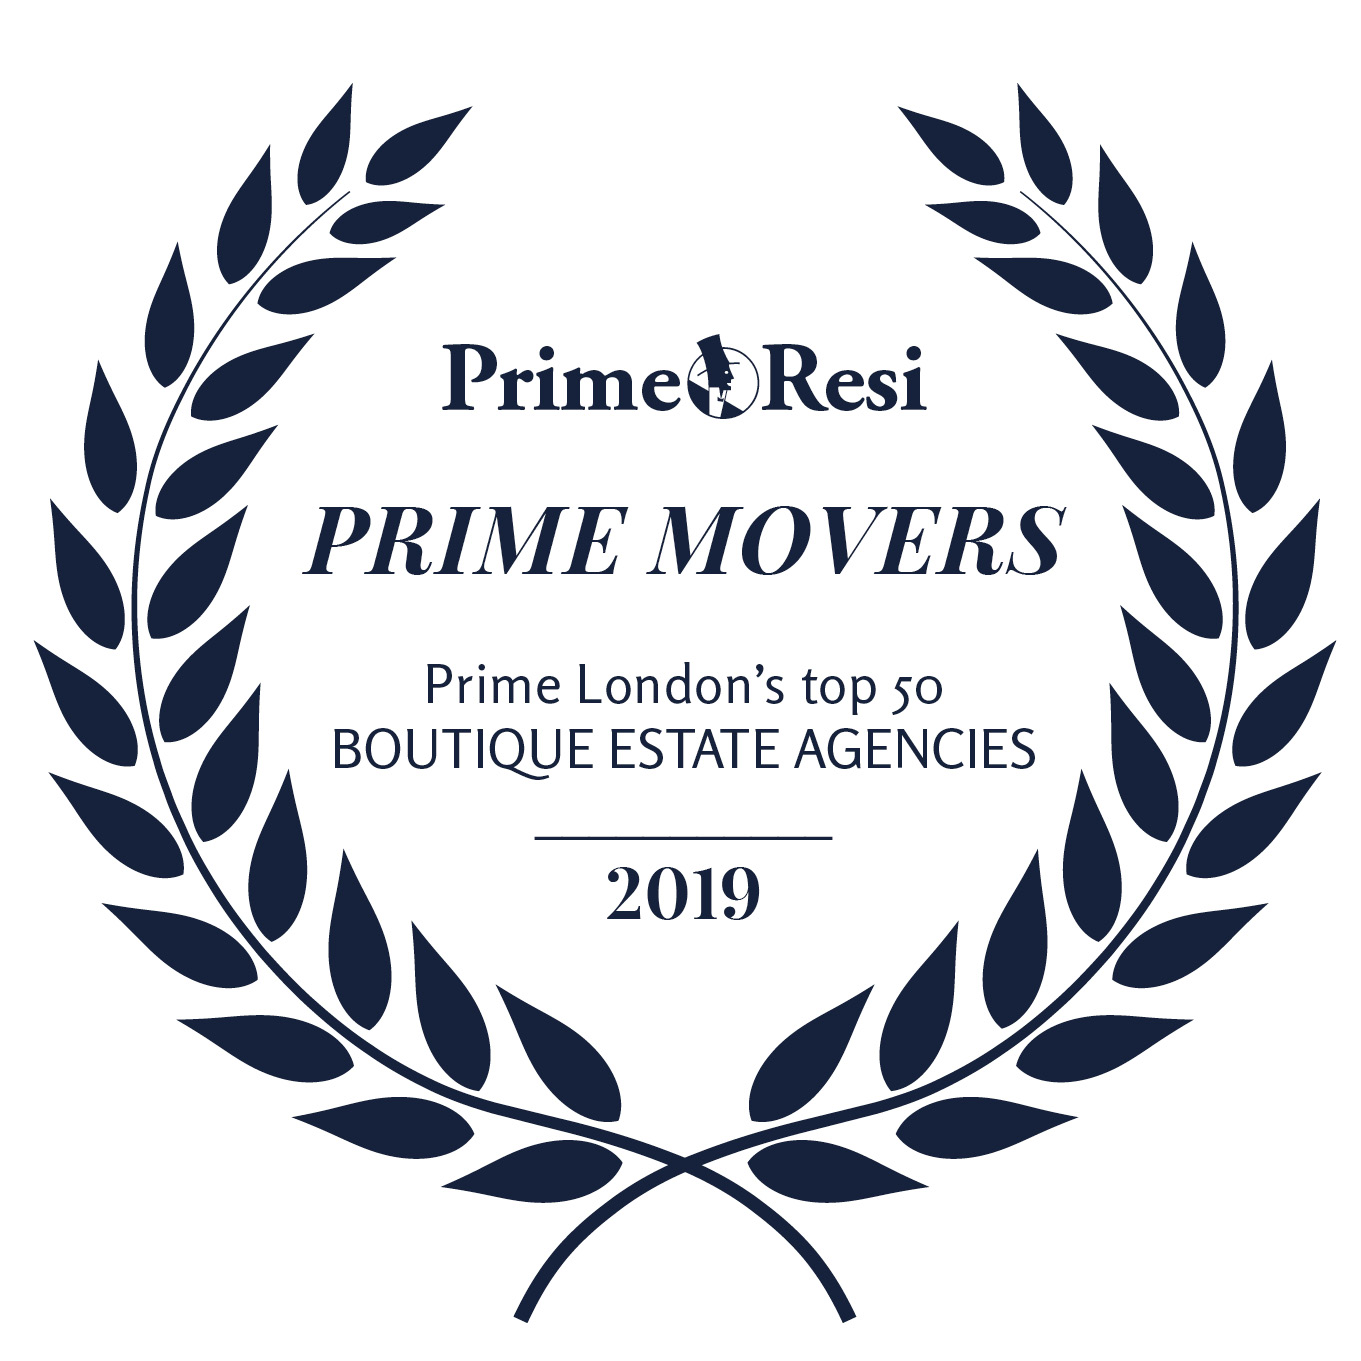 Prime-Movers-2019-wreath-ESTATE-AGENCY-blue-on-transparent.jpg